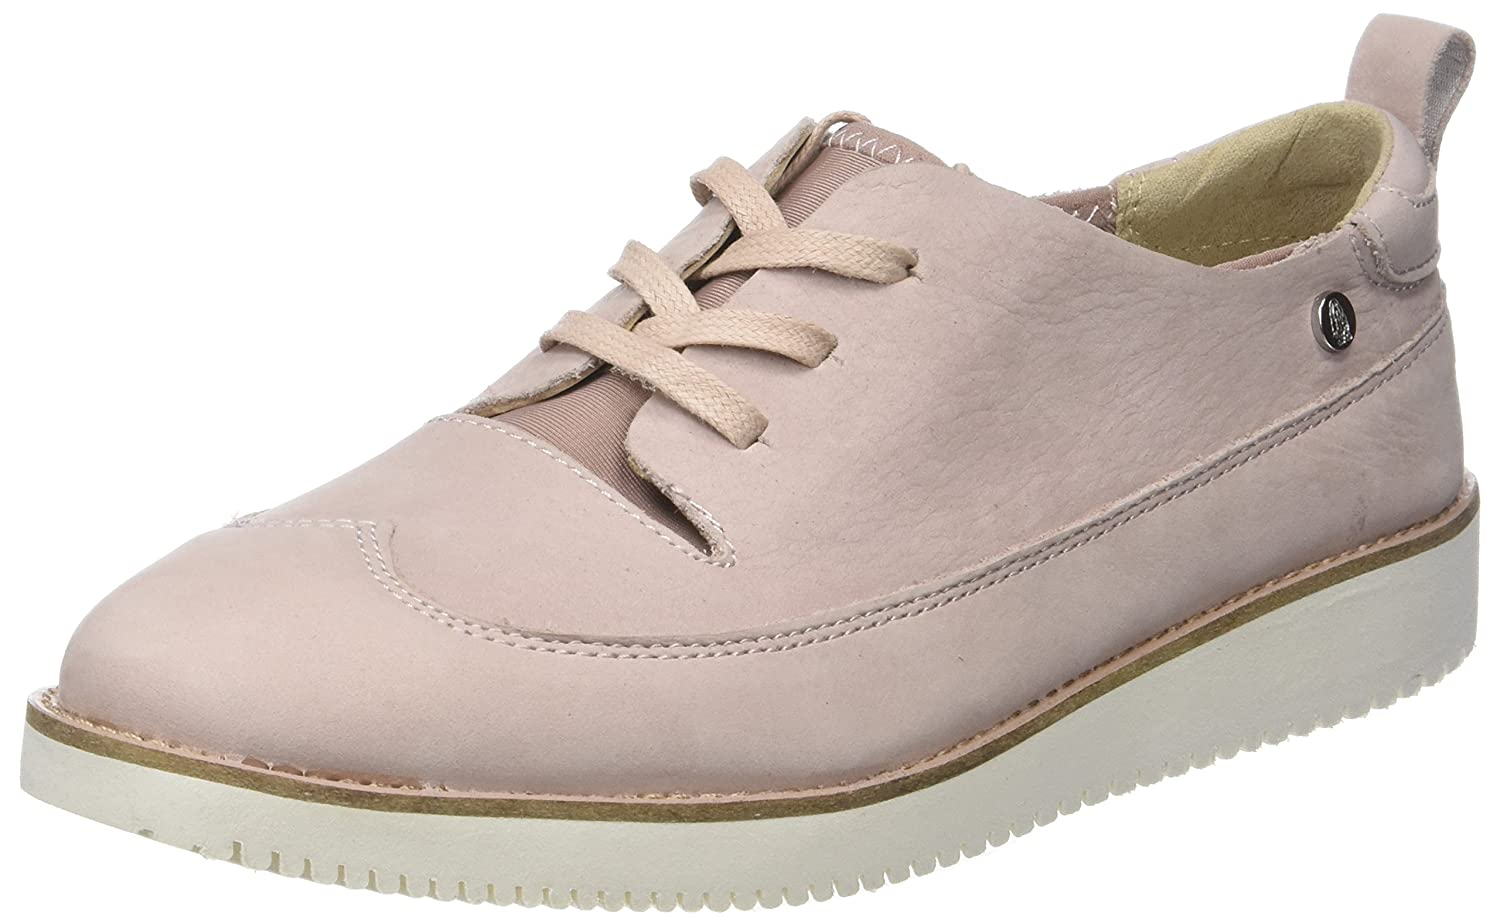 Hush Puppies WT Puppies Oxford, Derbys Hush Femme Rose (Rose Rose Clair) 0a508fc - deadsea.space